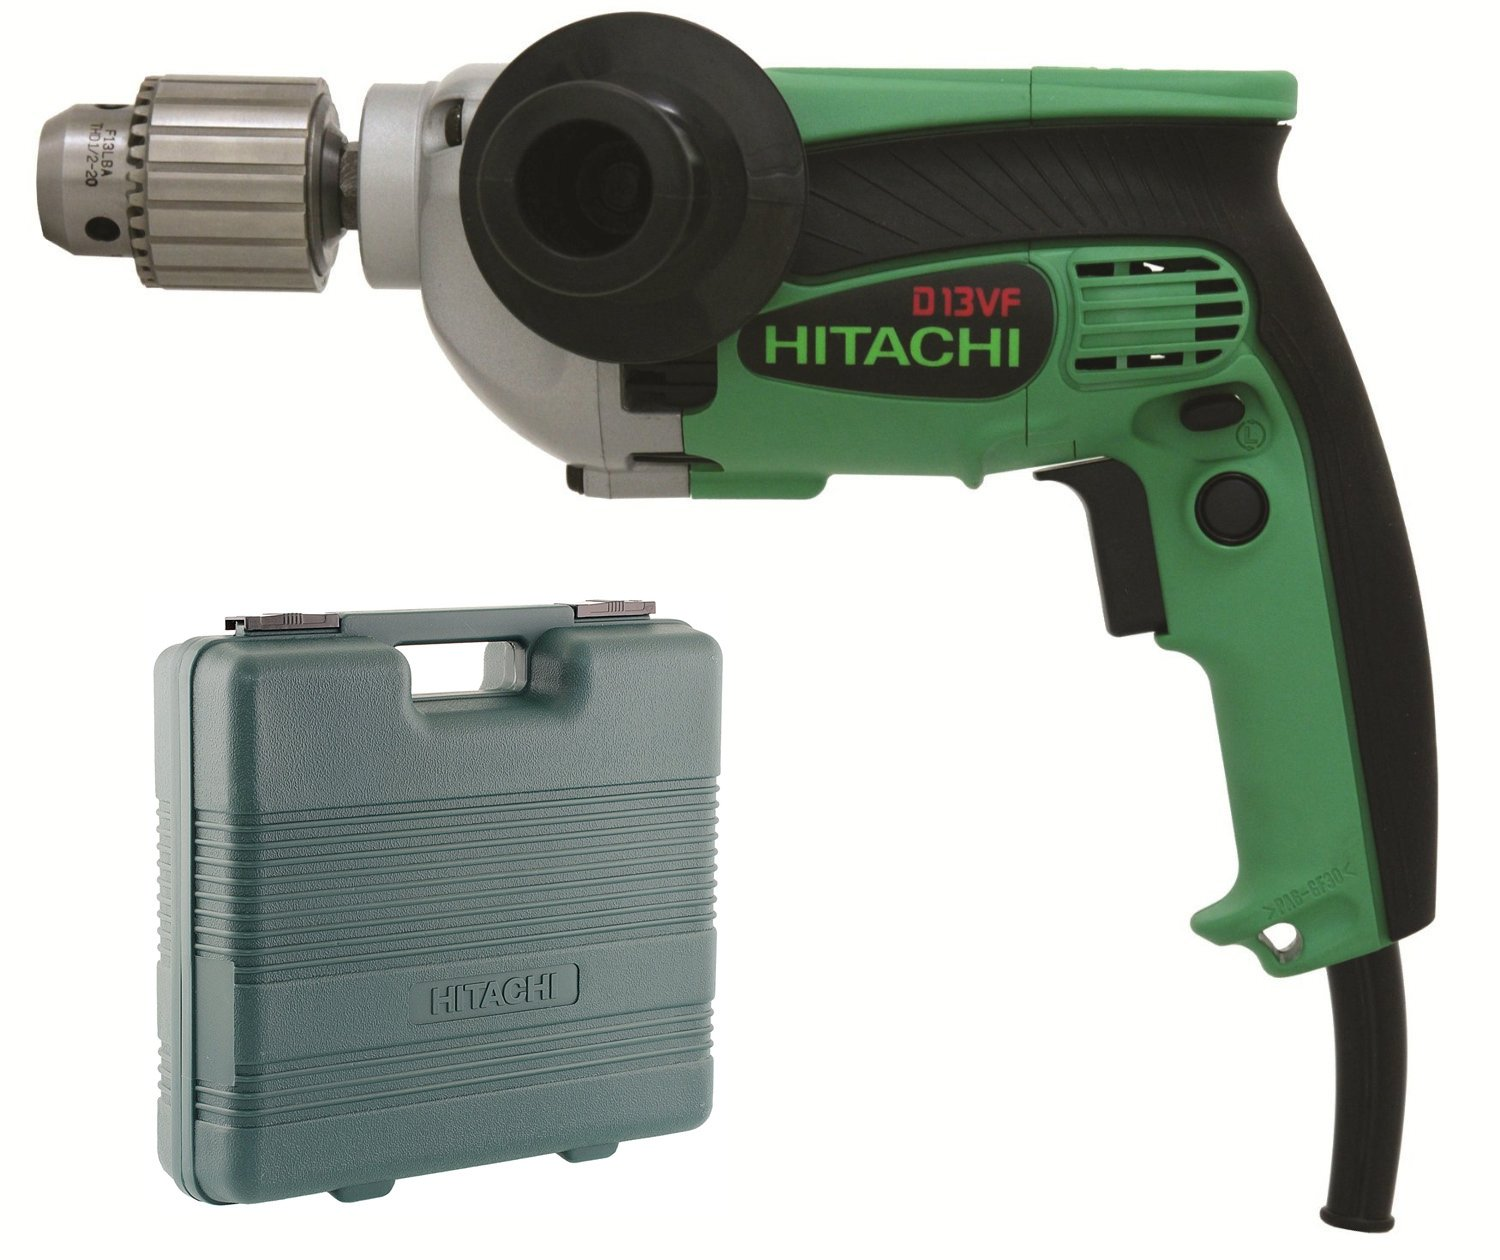 Hitachi D13VFR 9.0 Amp 1 2 in. EVS Variable-Speed Drill Renewed